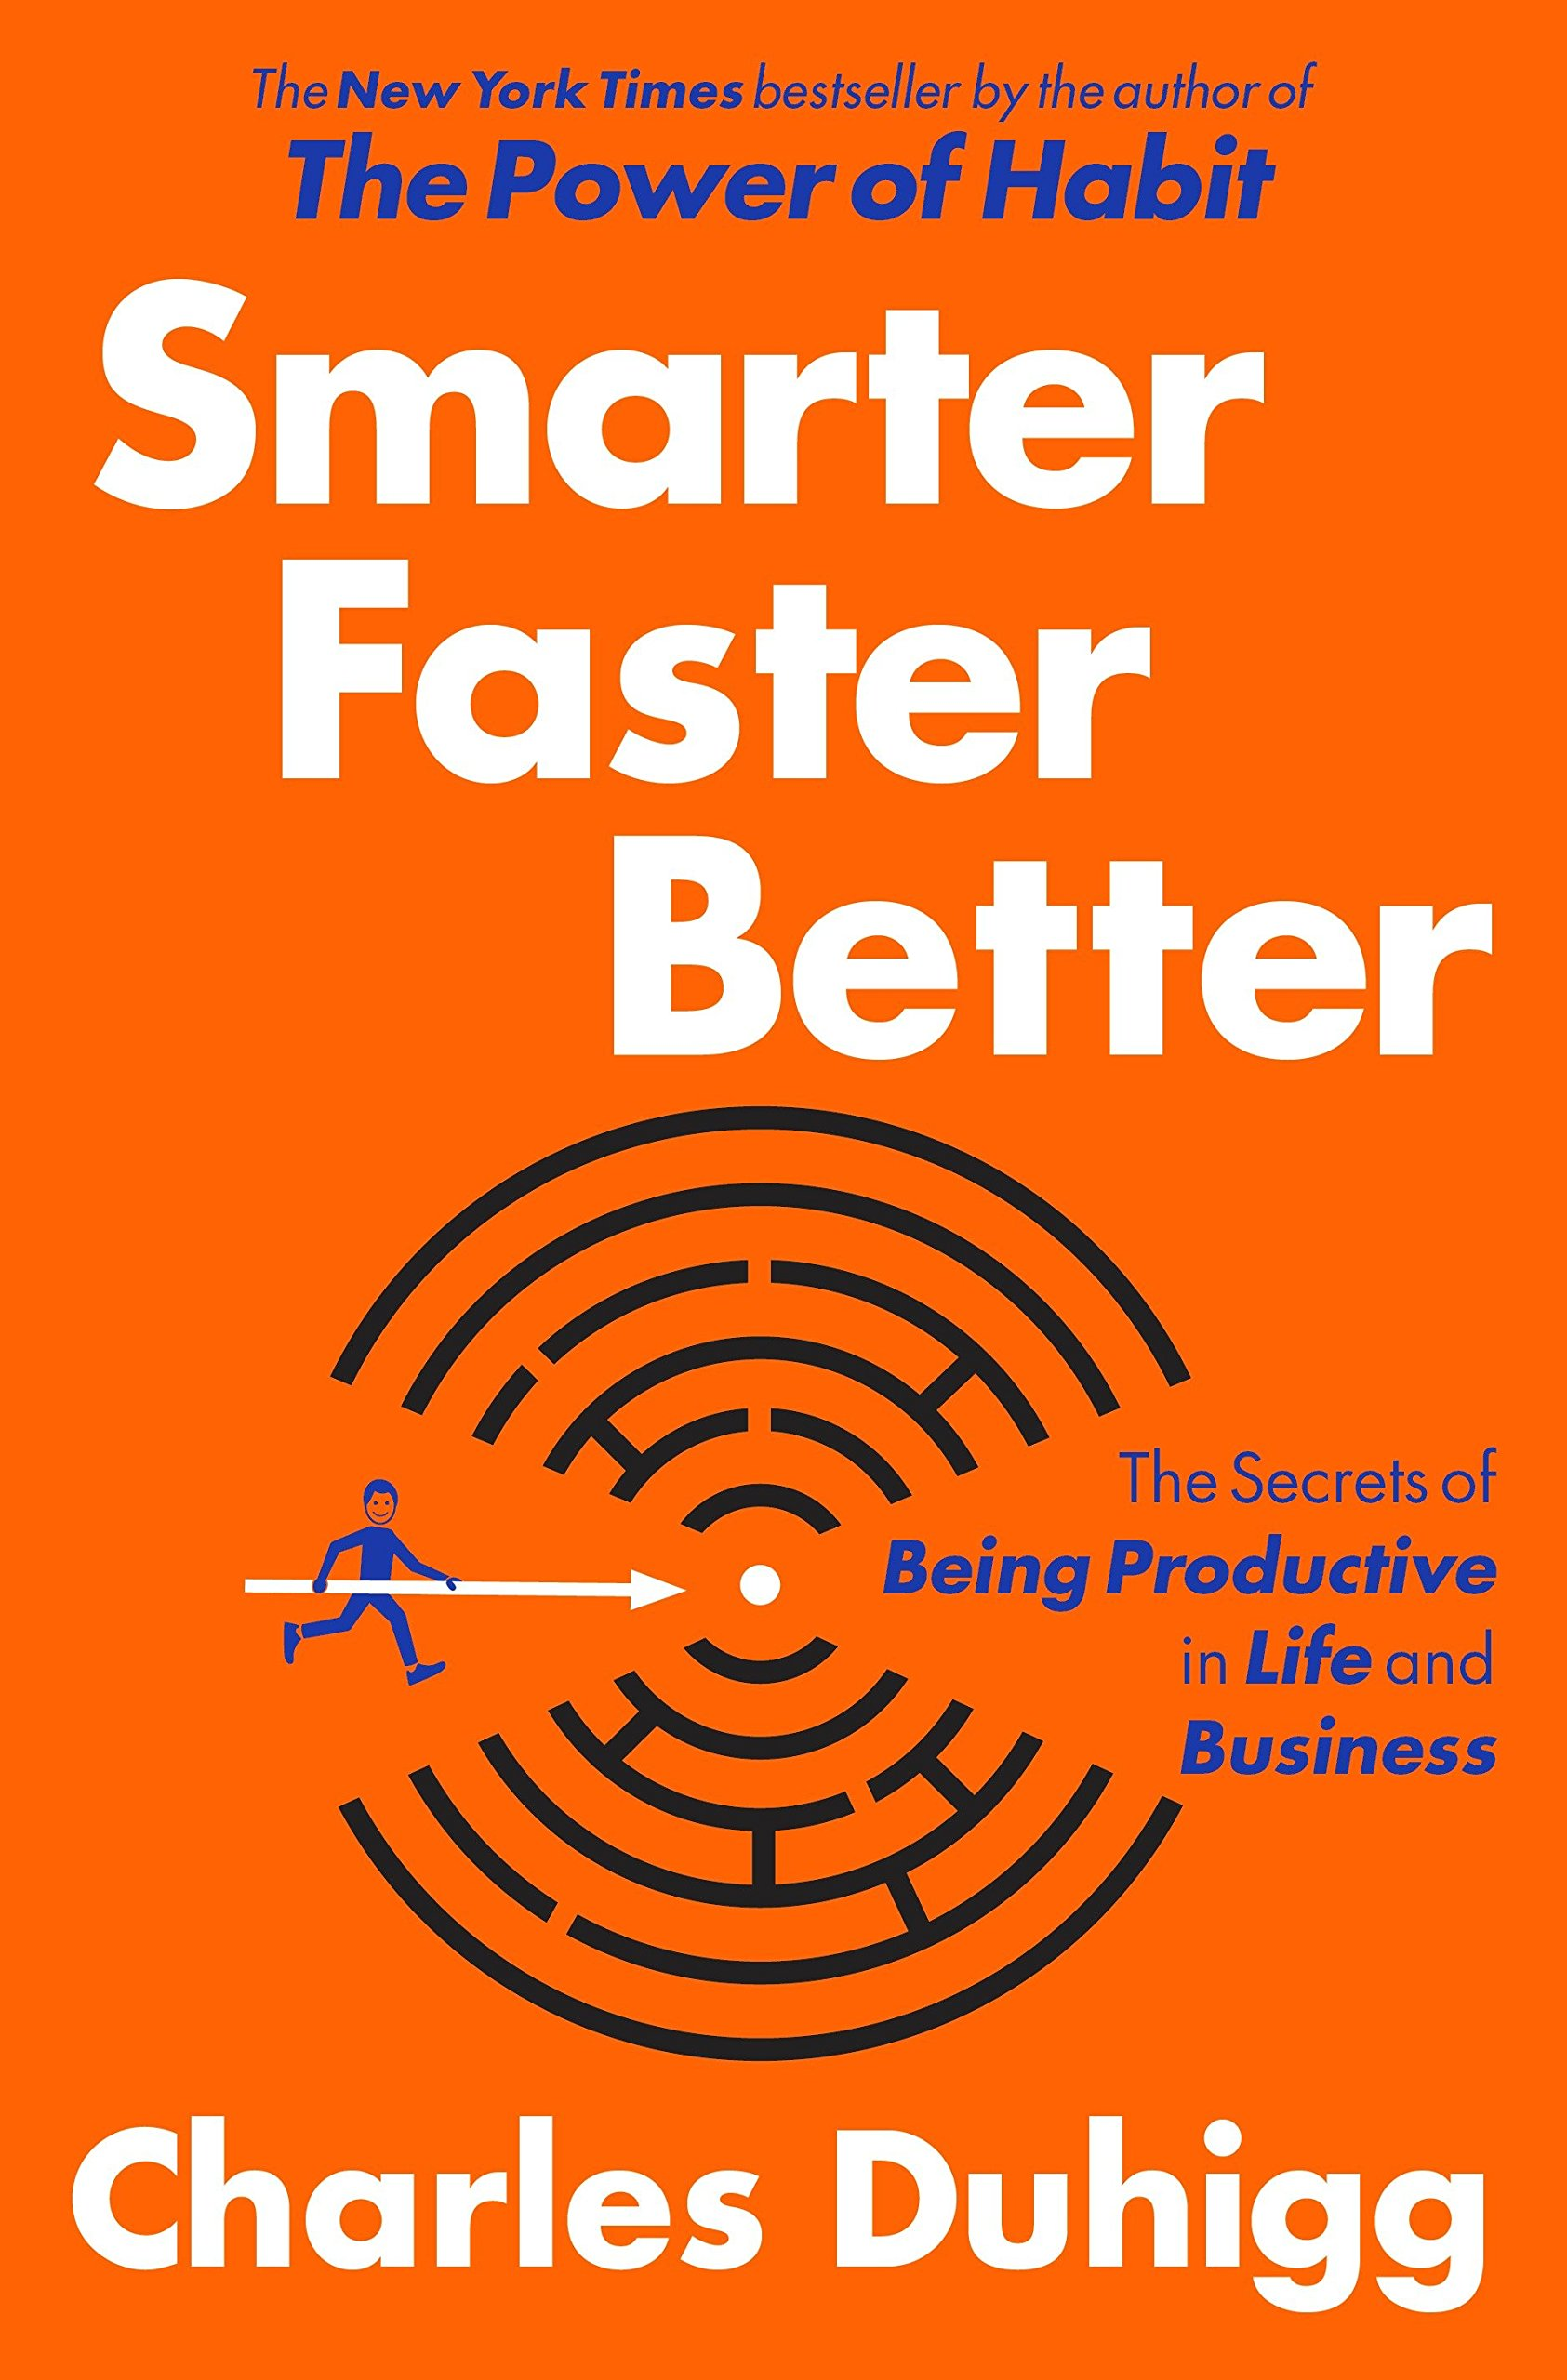 Smarter faster better the secrets of being productive in life and smarter faster better the secrets of being productive in life and business livros na amazon brasil 9780812993394 fandeluxe Images